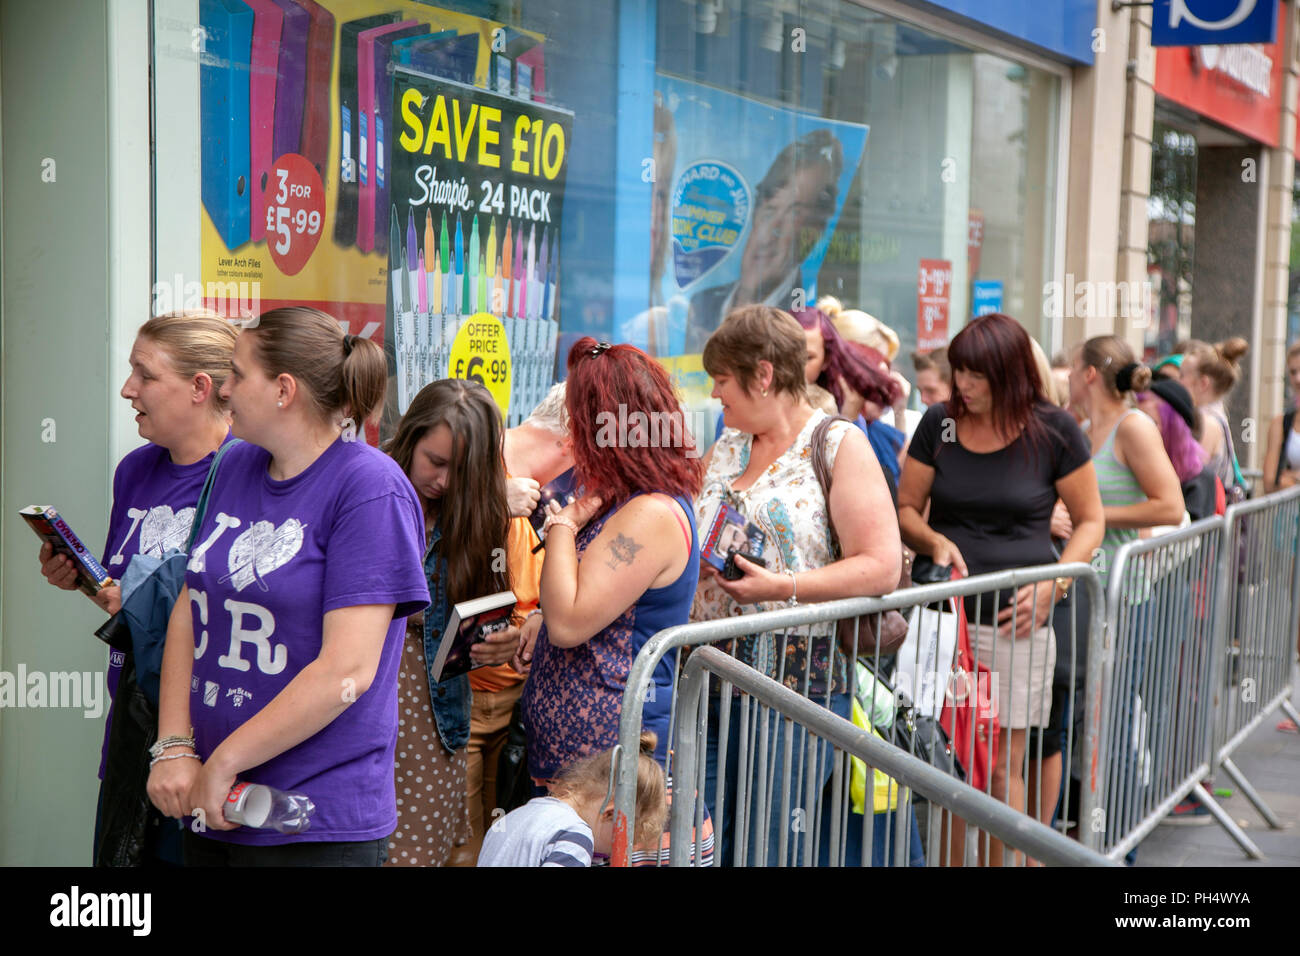 People queueing to meet magician Dynamo appearing at WH Smith in Sheffield, South Yorkshire, England Stock Photo